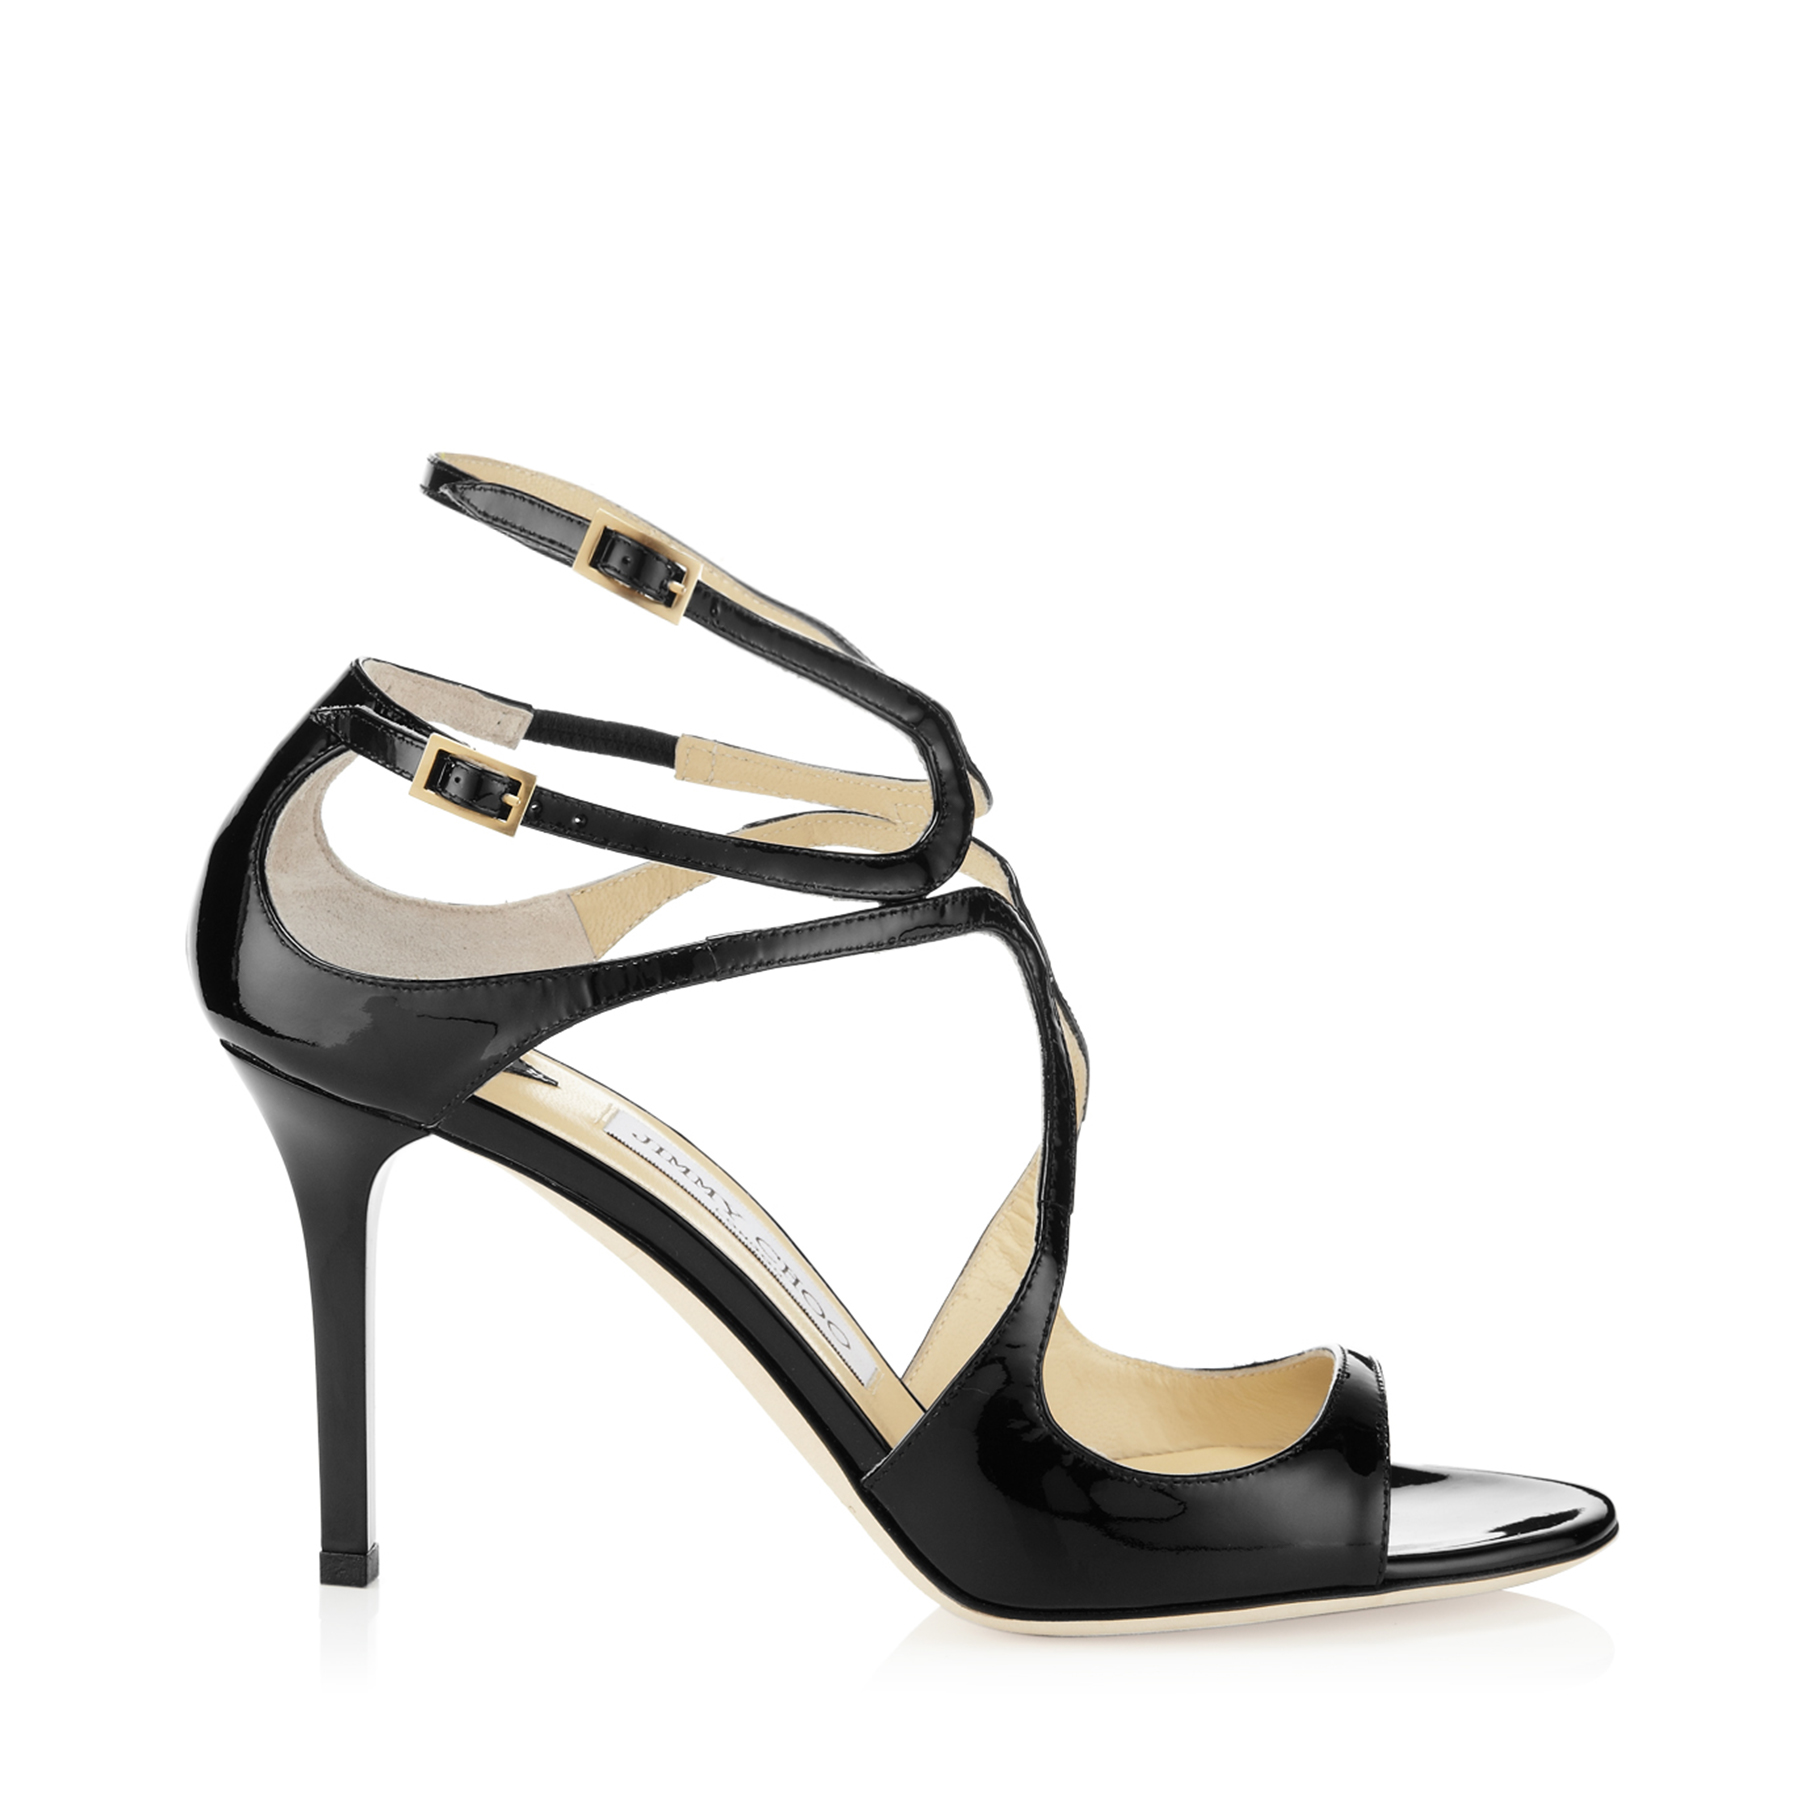 4d217601c4a Stylish Black Patent Leather Strappy Sandals